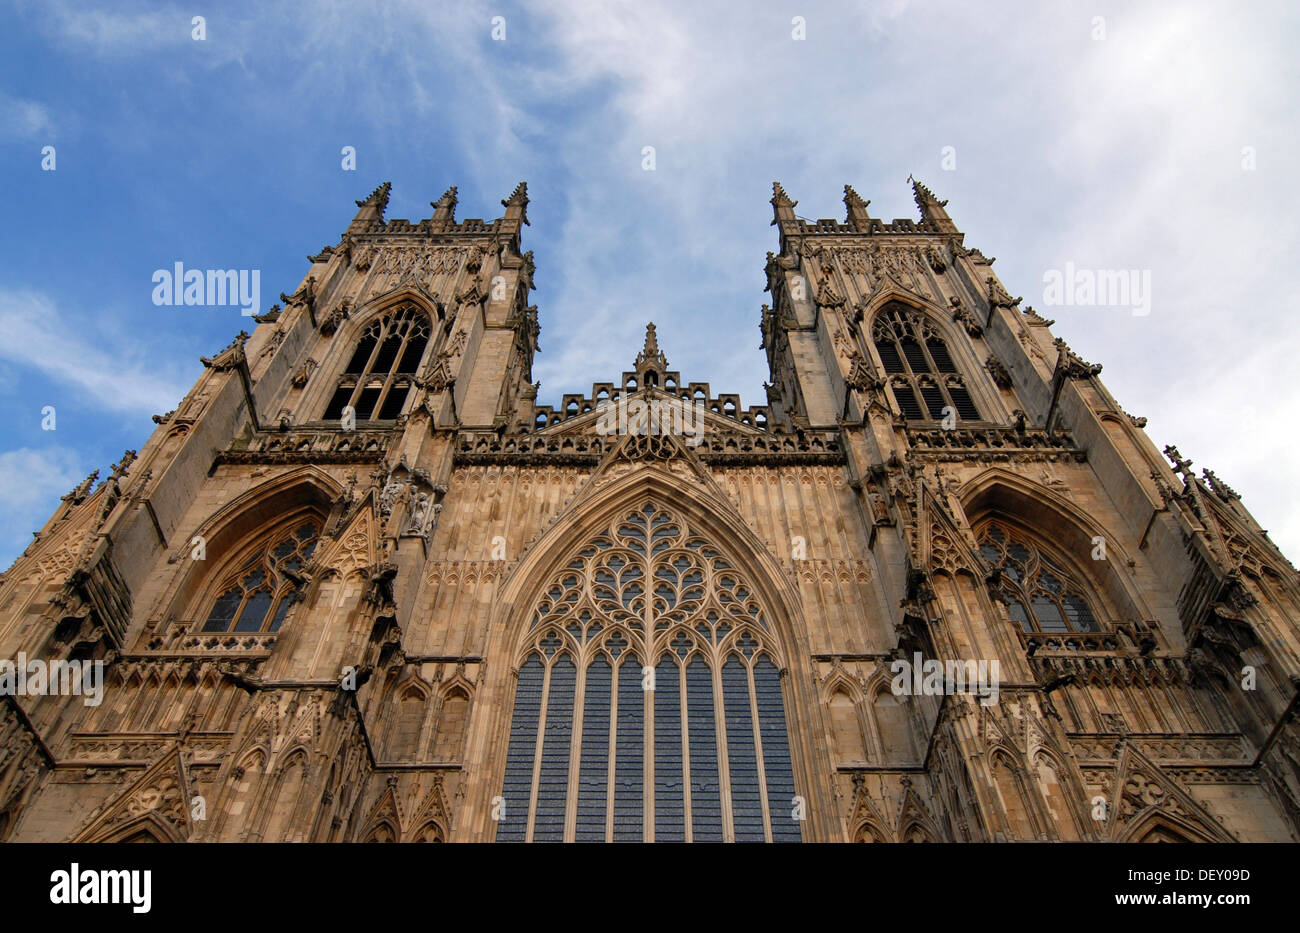 York Minster, the cathedral of York, Yorkshire, England, United Kingdom, Europe - Stock Image